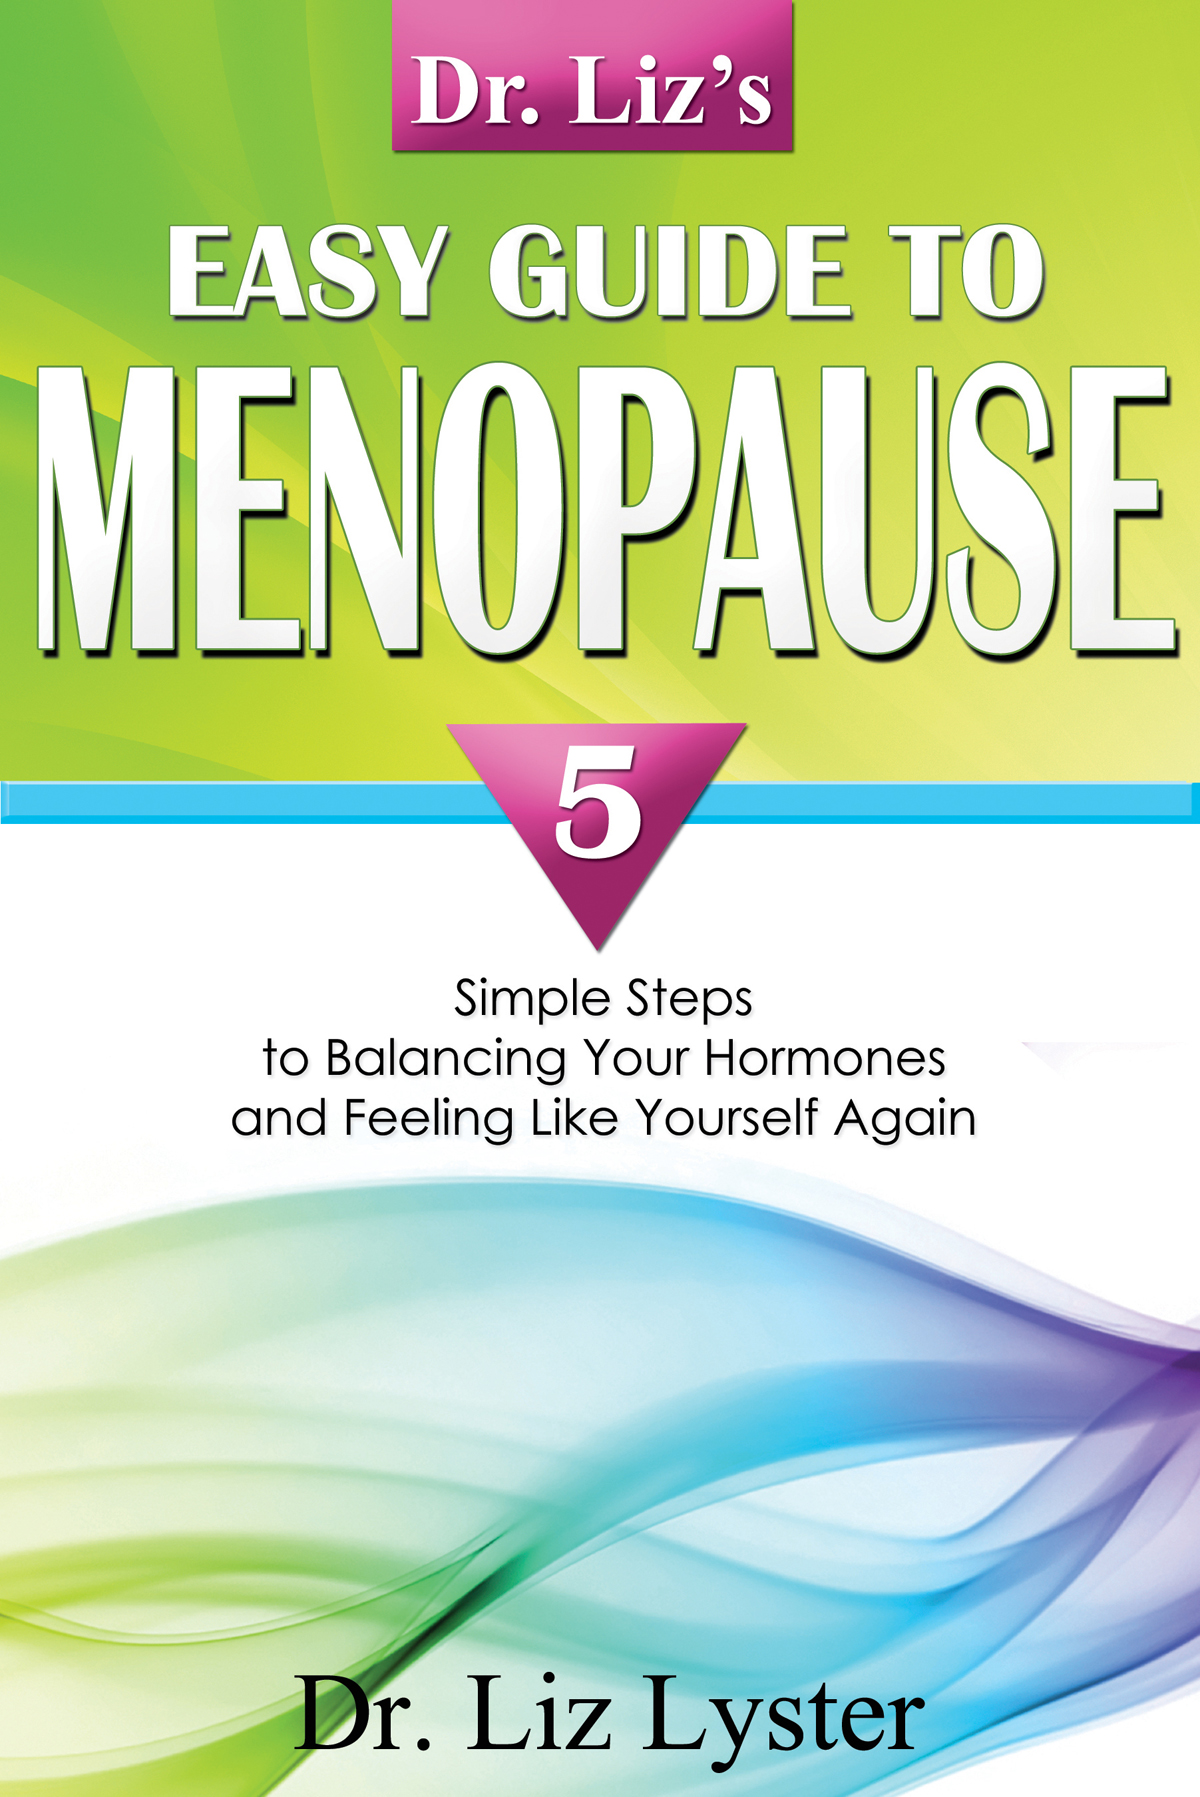 Dr. Liz's Easy Guide to Menopause